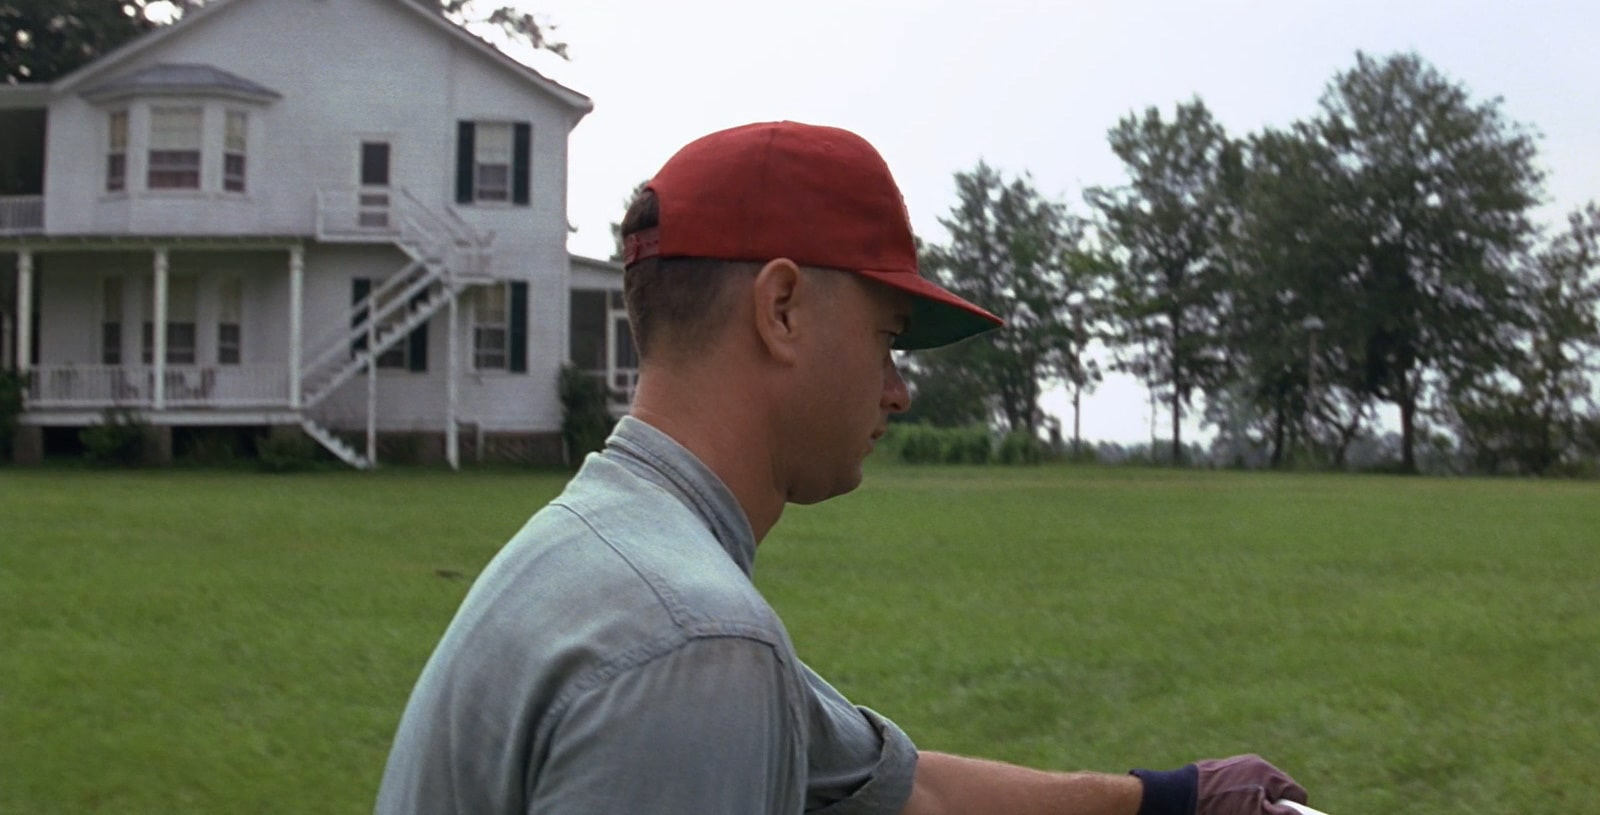 Forrest Gump and the 'My momma always saids' wisdoms